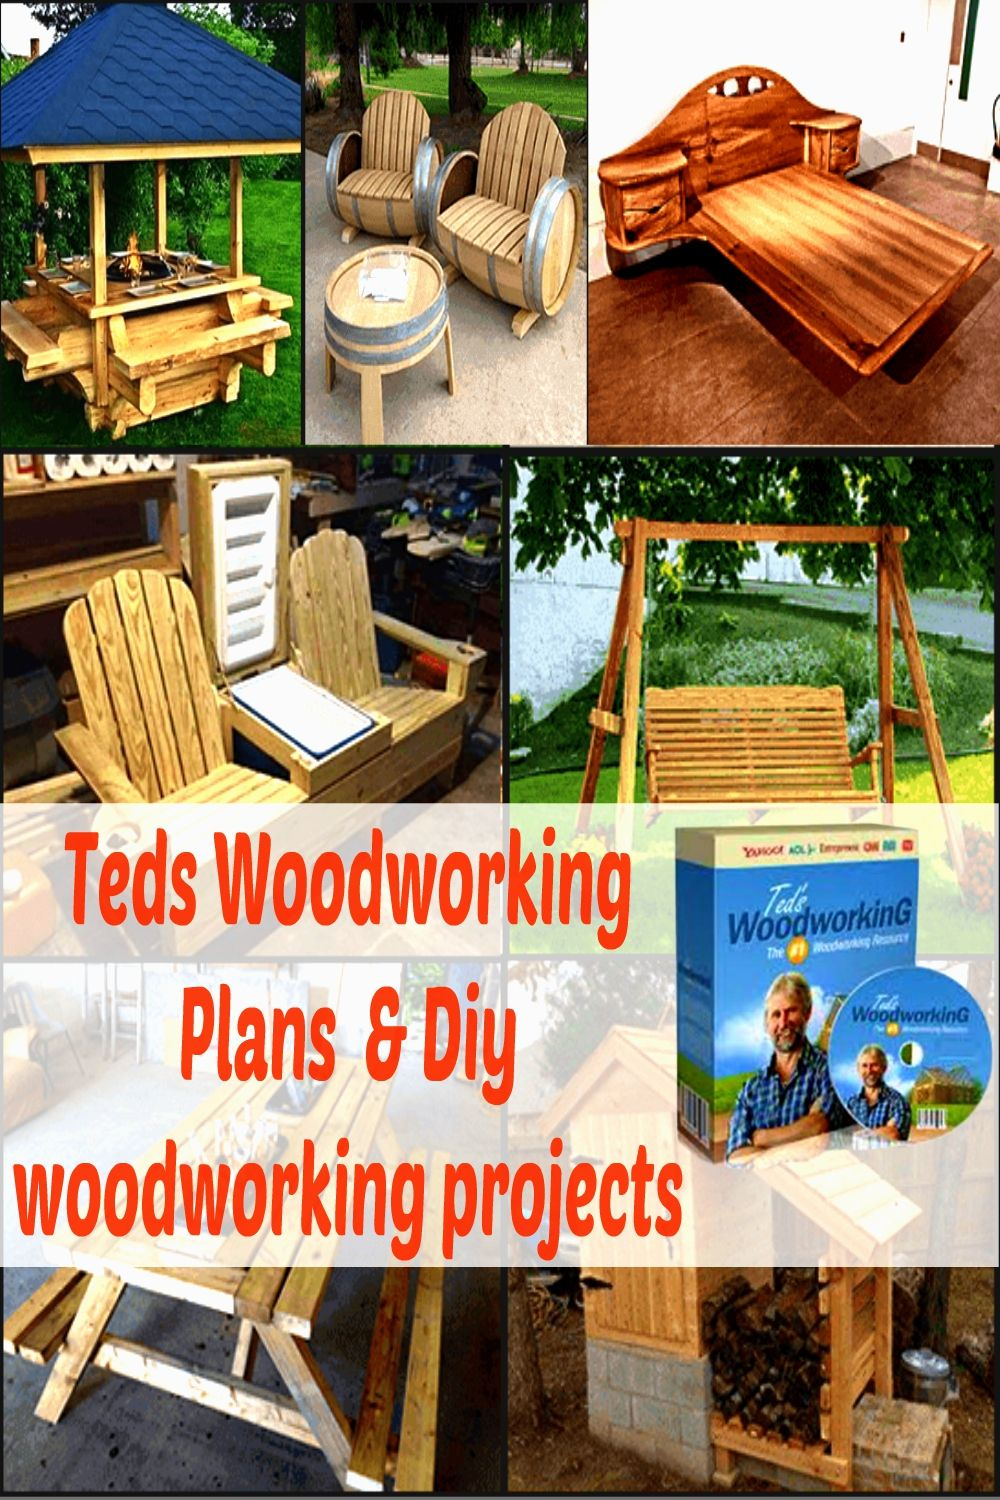 Teds Woodworking Plans Diy Woodworking Projects Make 16 000 Projects With Step By Step Plans Woodworking Plans Diy Woodworking Projects Diy Diy Woodworking